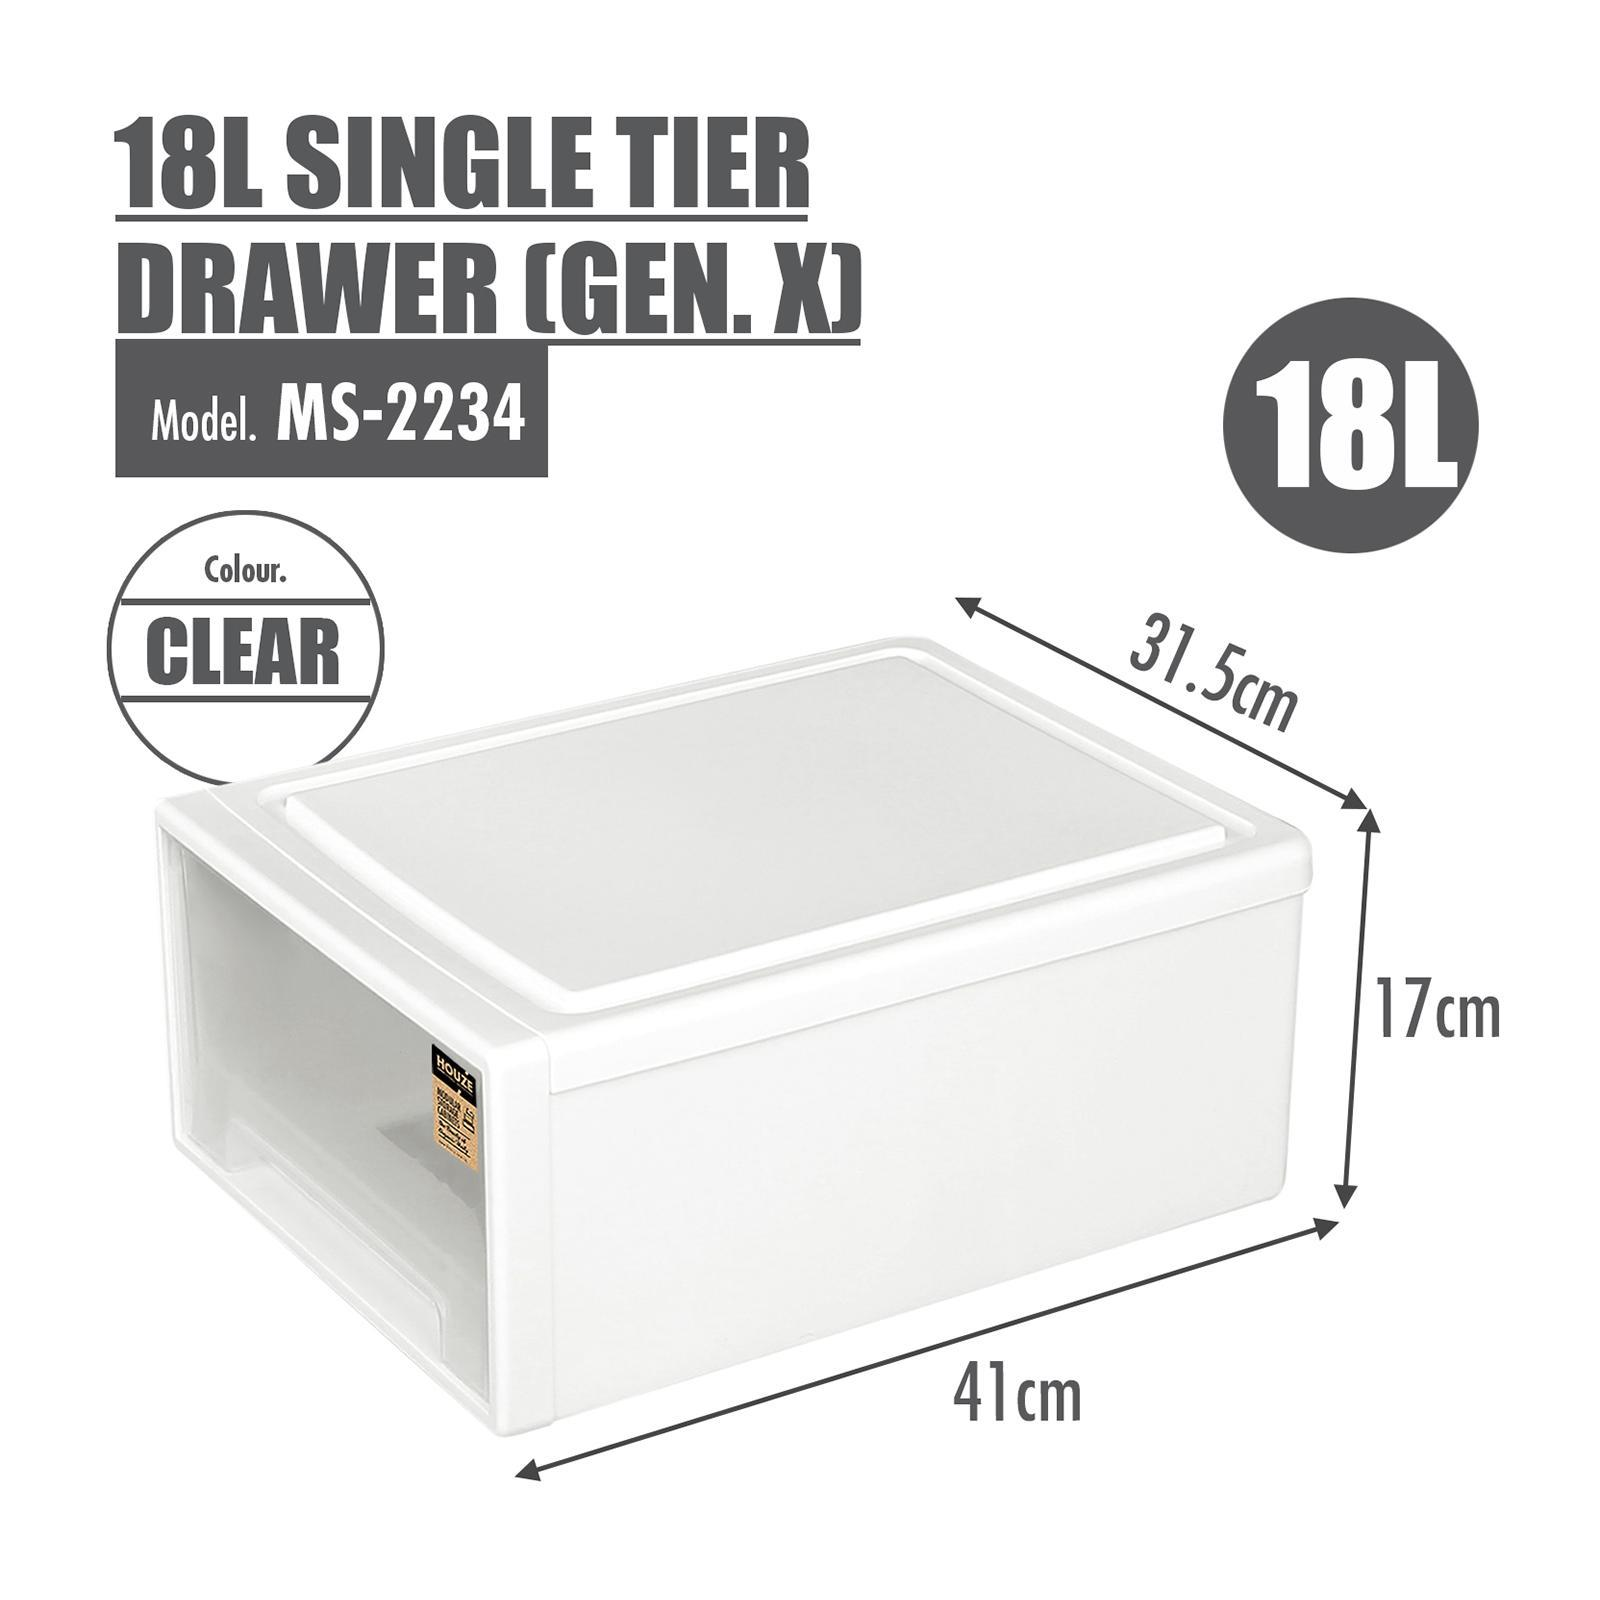 HOUZE 18L Single Tier Drawer